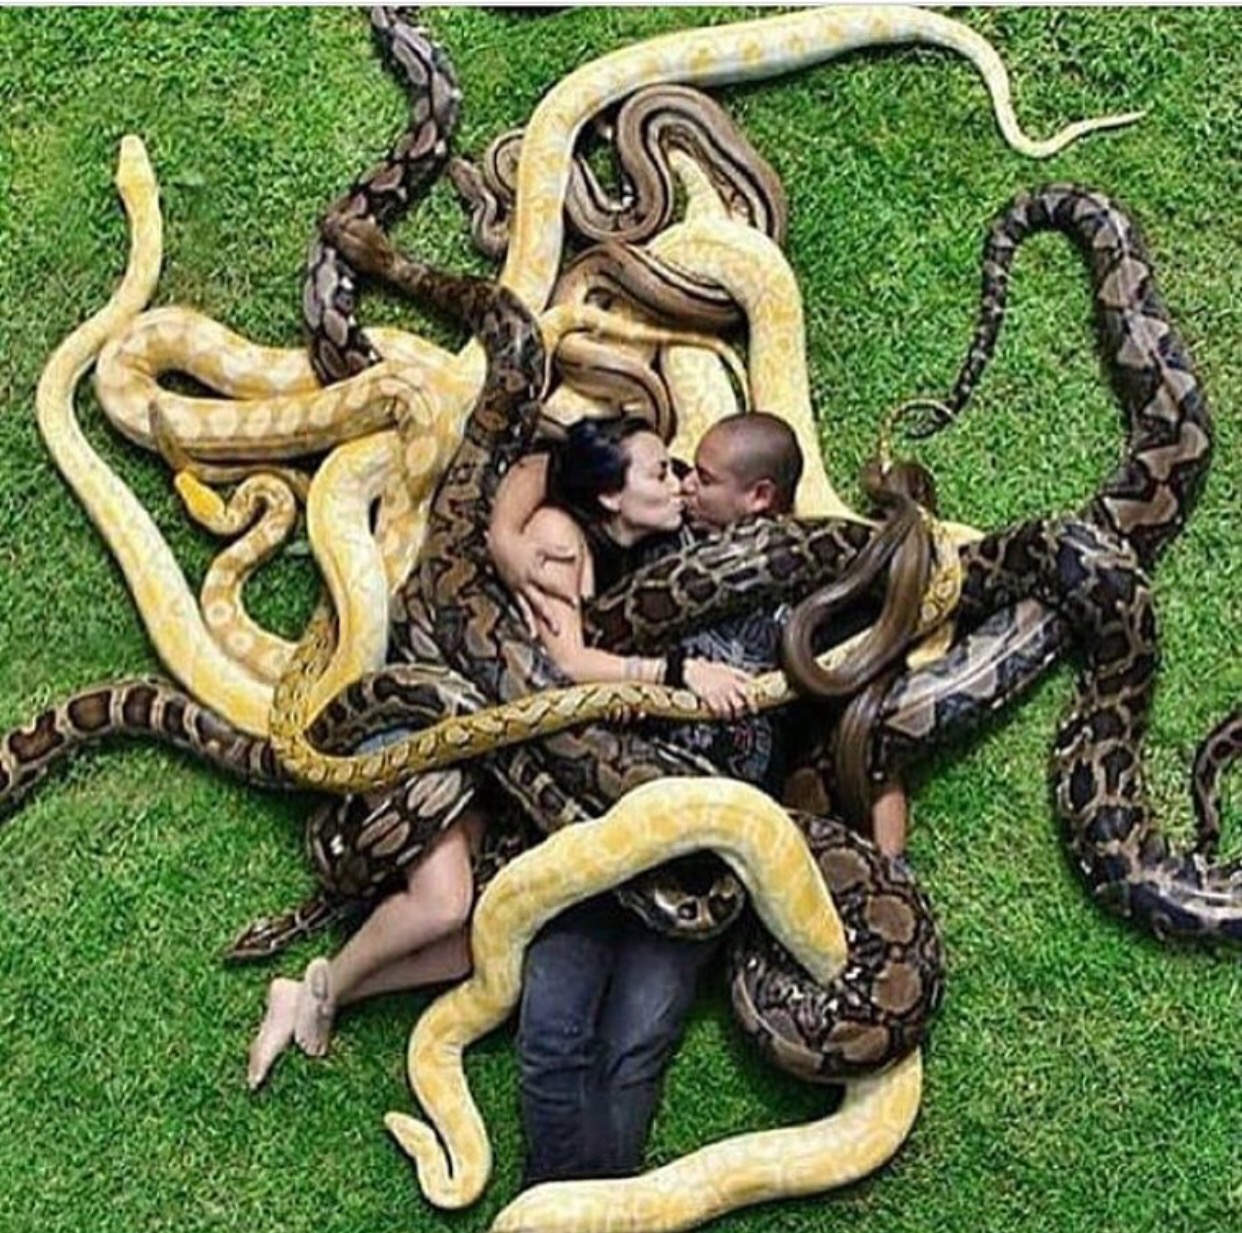 OMG! What Kind Of Bizarre Pre-wedding Photo Is This ???